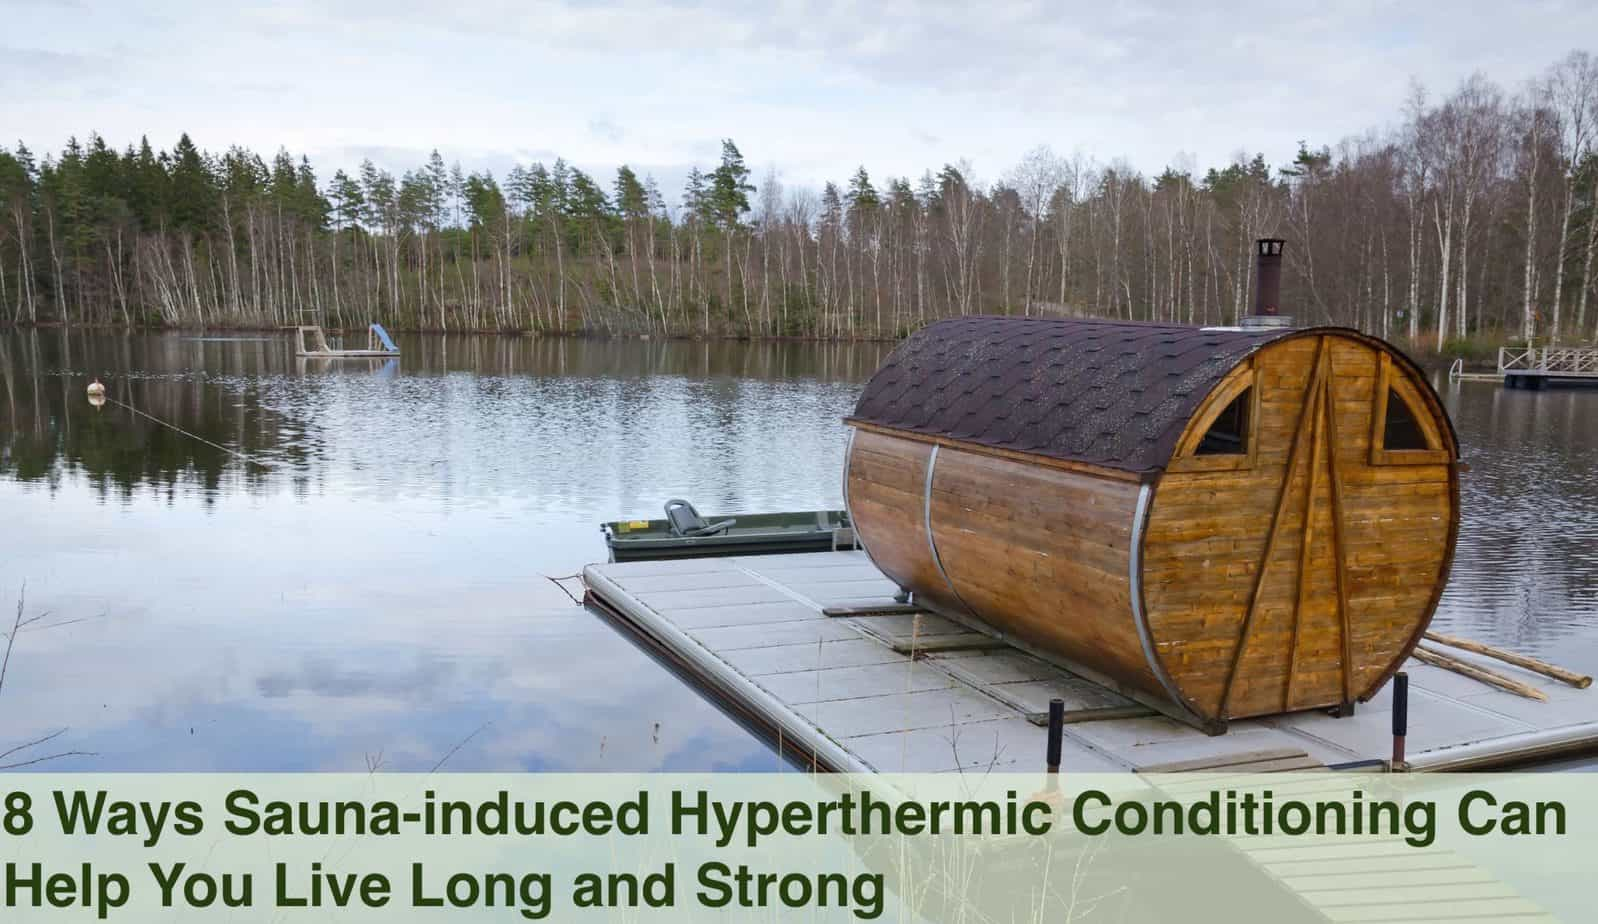 Sauna-induced Hyperthermic Conditioning Can Help You Live Long and Strong